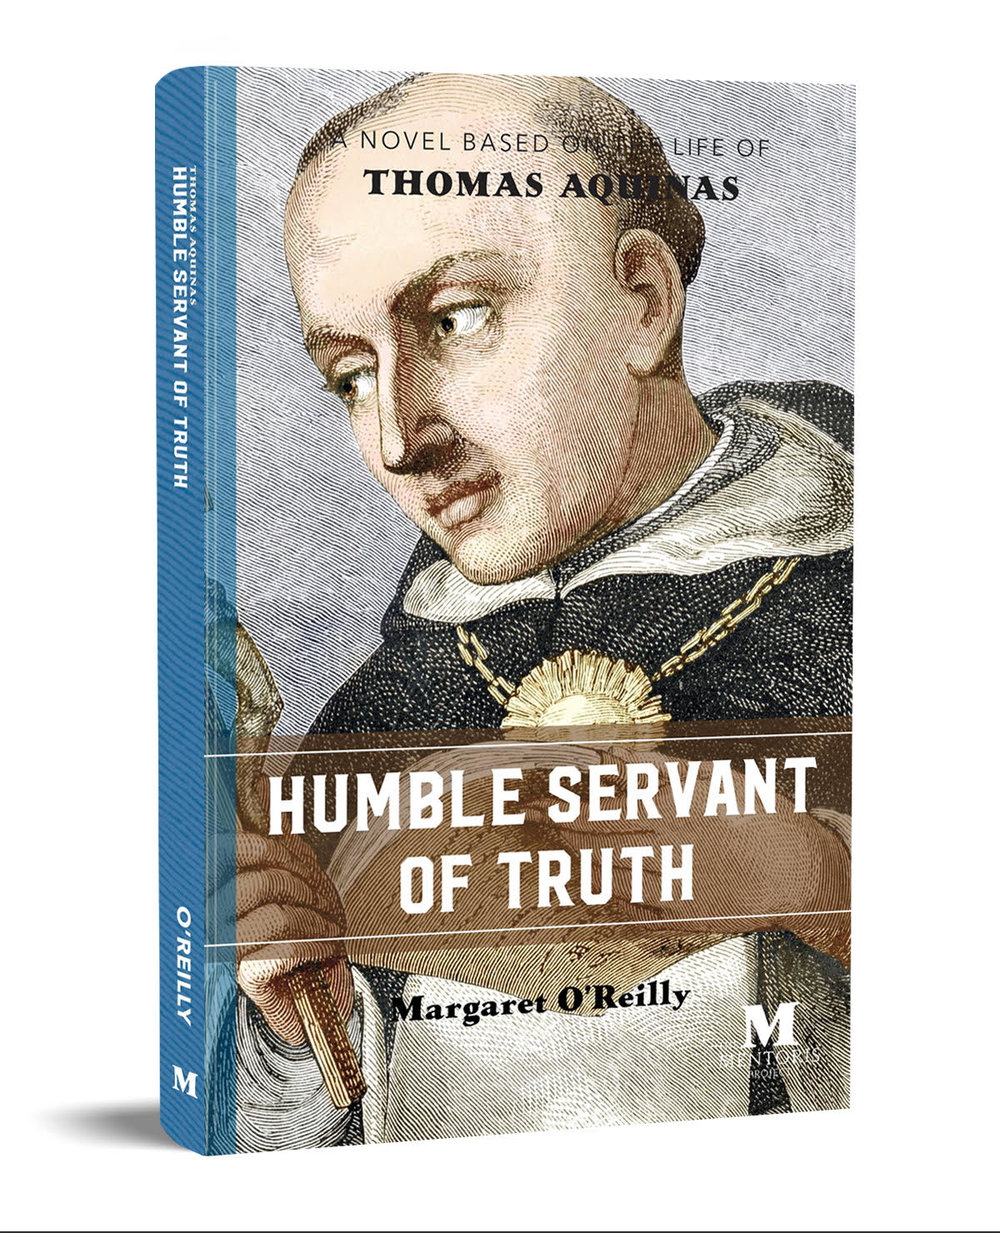 """This concise  but well-researched life of St. Thomas Aquinas, the great medieval theologian and saint, will surprise, delight, and inspire. The author ... not only captures the essentials of Thomas's upbringing, life, and career but also succeeds in bringing to the fore those aspects of Thomas's learning and sanctity that will speak to the minds and hearts of the modern readers for whom this book is intended. Italian-Americans and others of Italian descent will find ... an inspirational account of one of the greatest heroes ever to come from Italy, whose life even today continues to exercise influence around the world. Students and learners of all ages will especially find ... a call to emulate his virtues and way of life."" --Dr. Mark J. Clark, Associate Dean for Undergraduate Studies, The School of Theology and Religious Studies, The Catholic University of America"